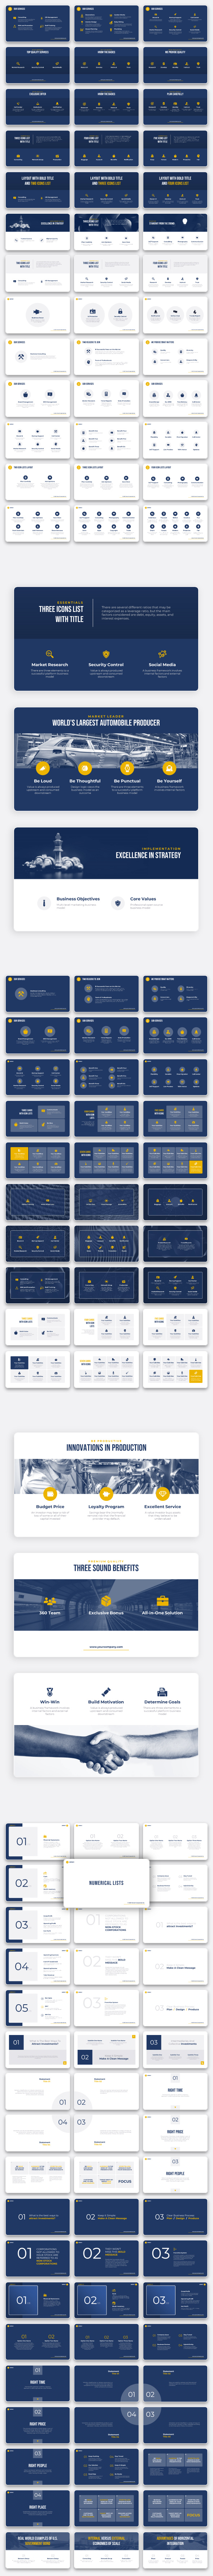 Corporate - Premium PowerPoint Template for Business - 8